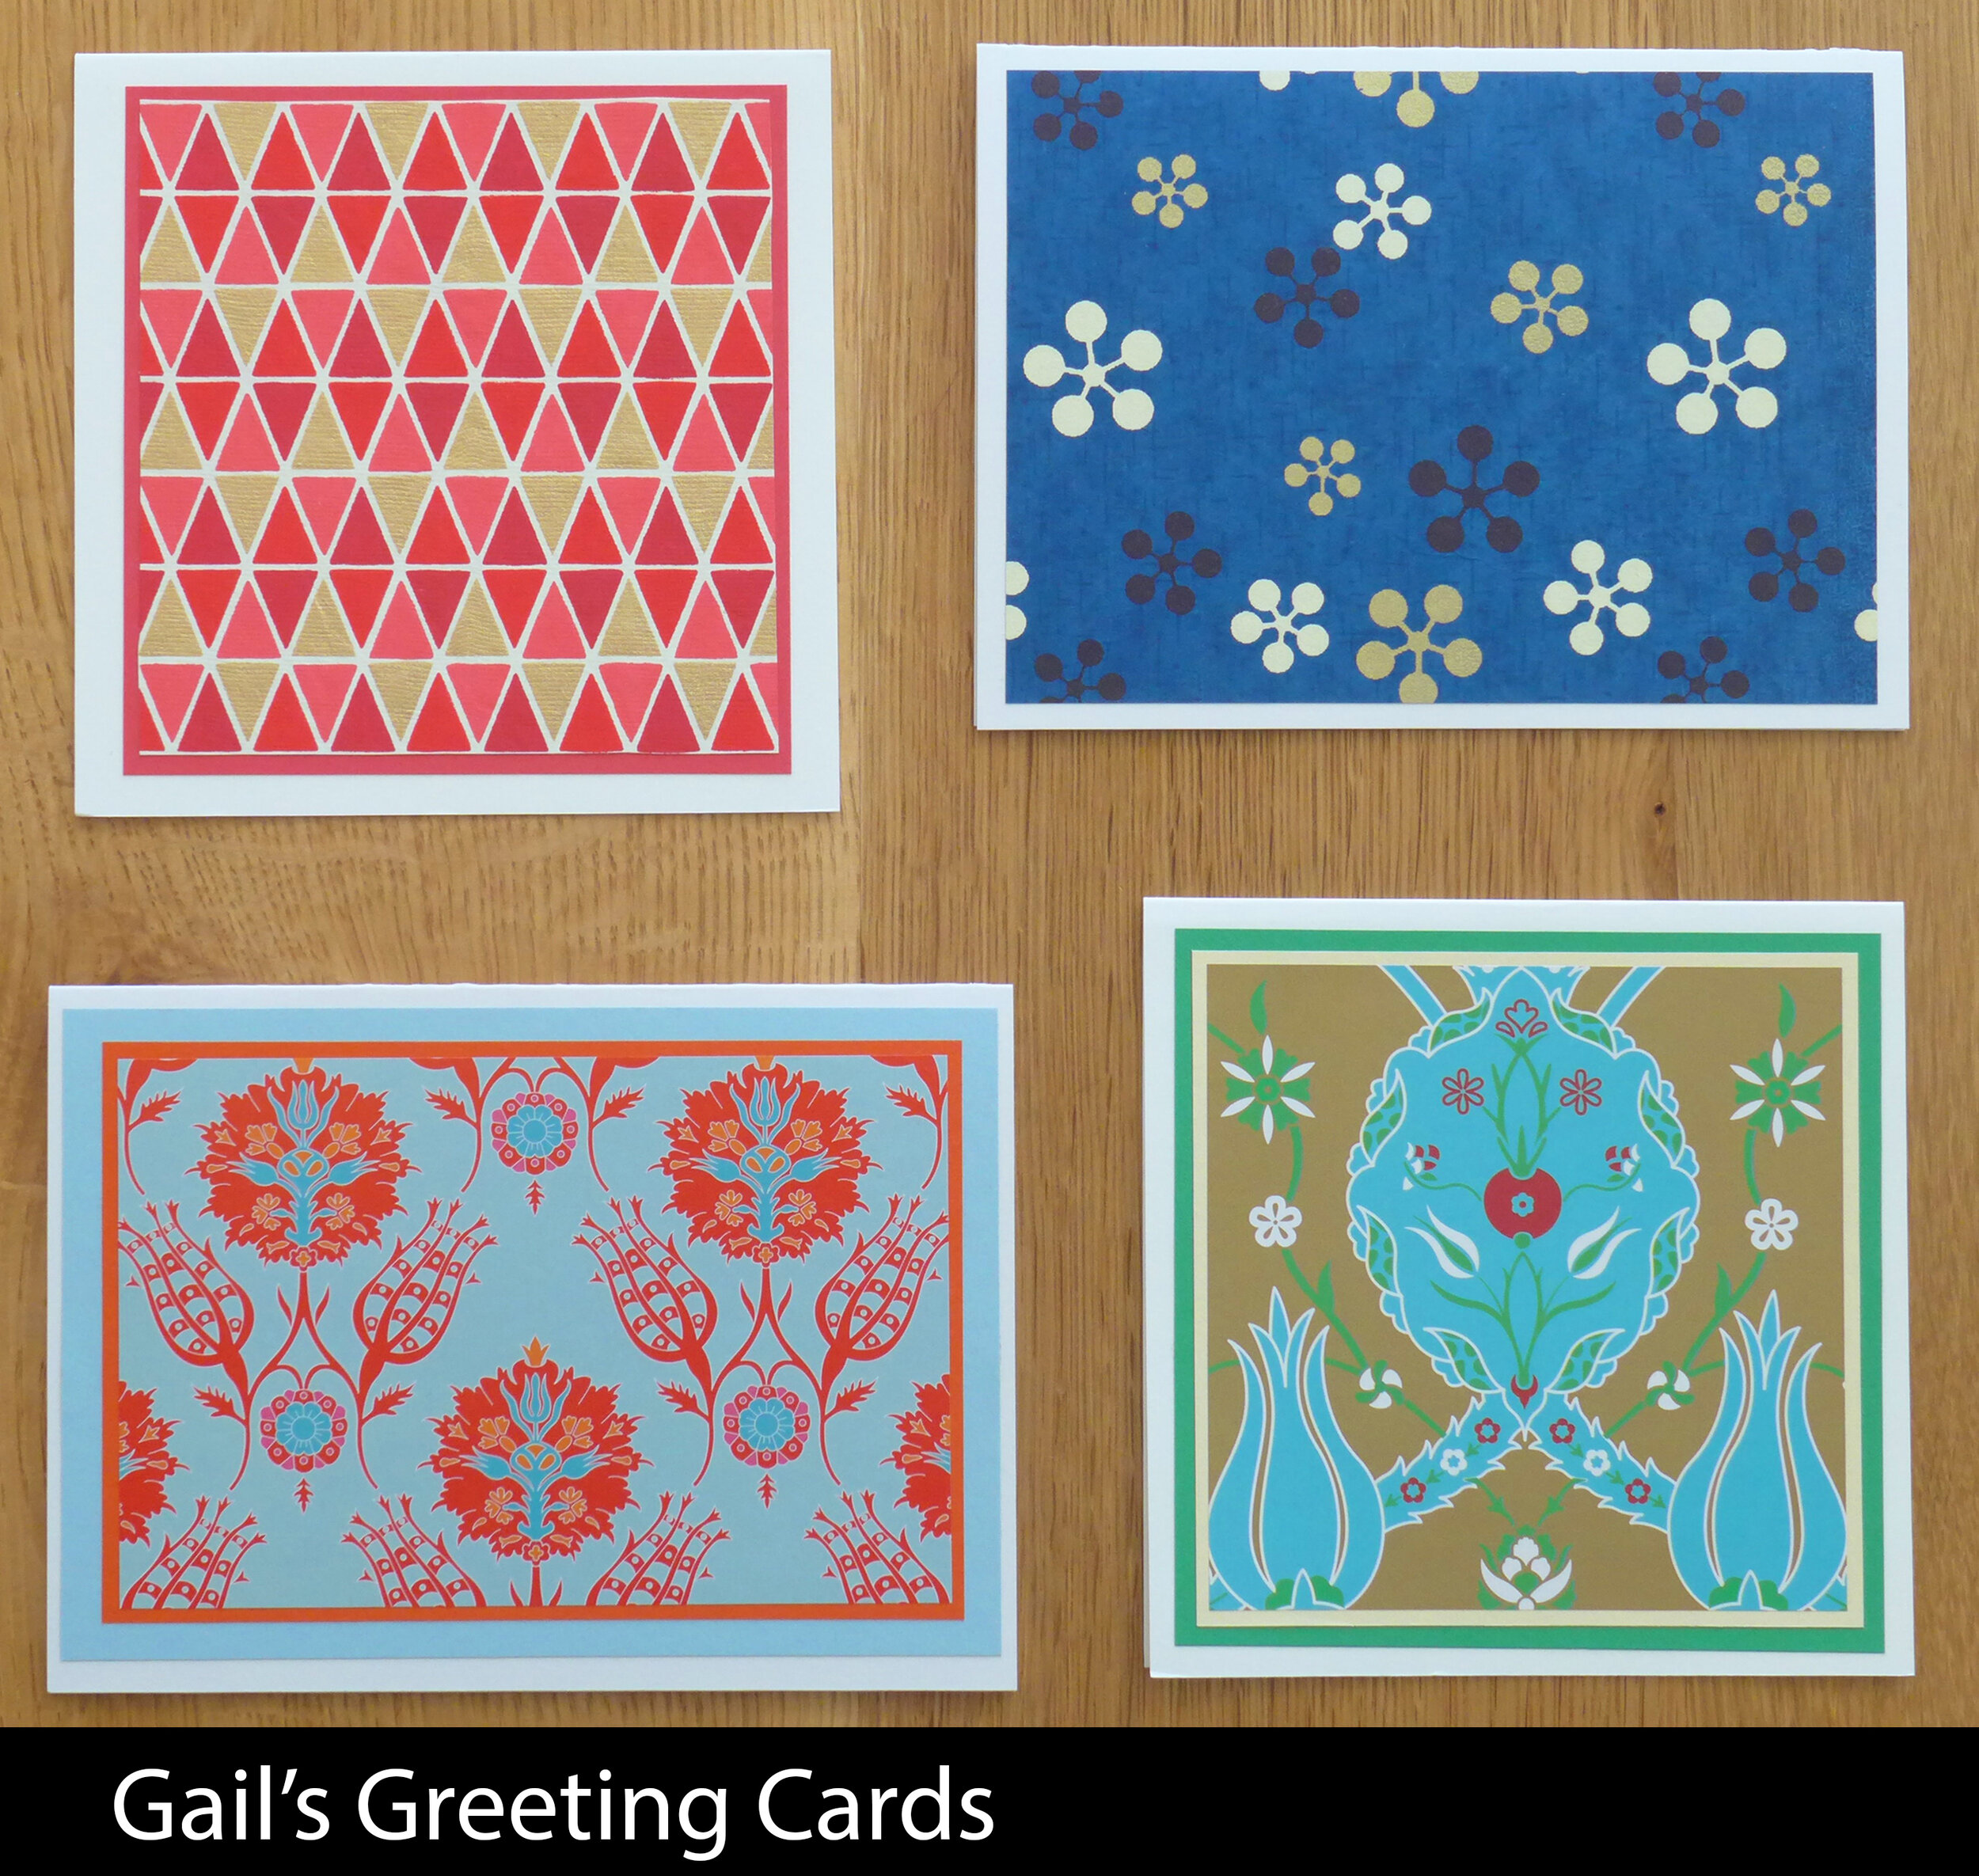 Gail's Greeting Cards